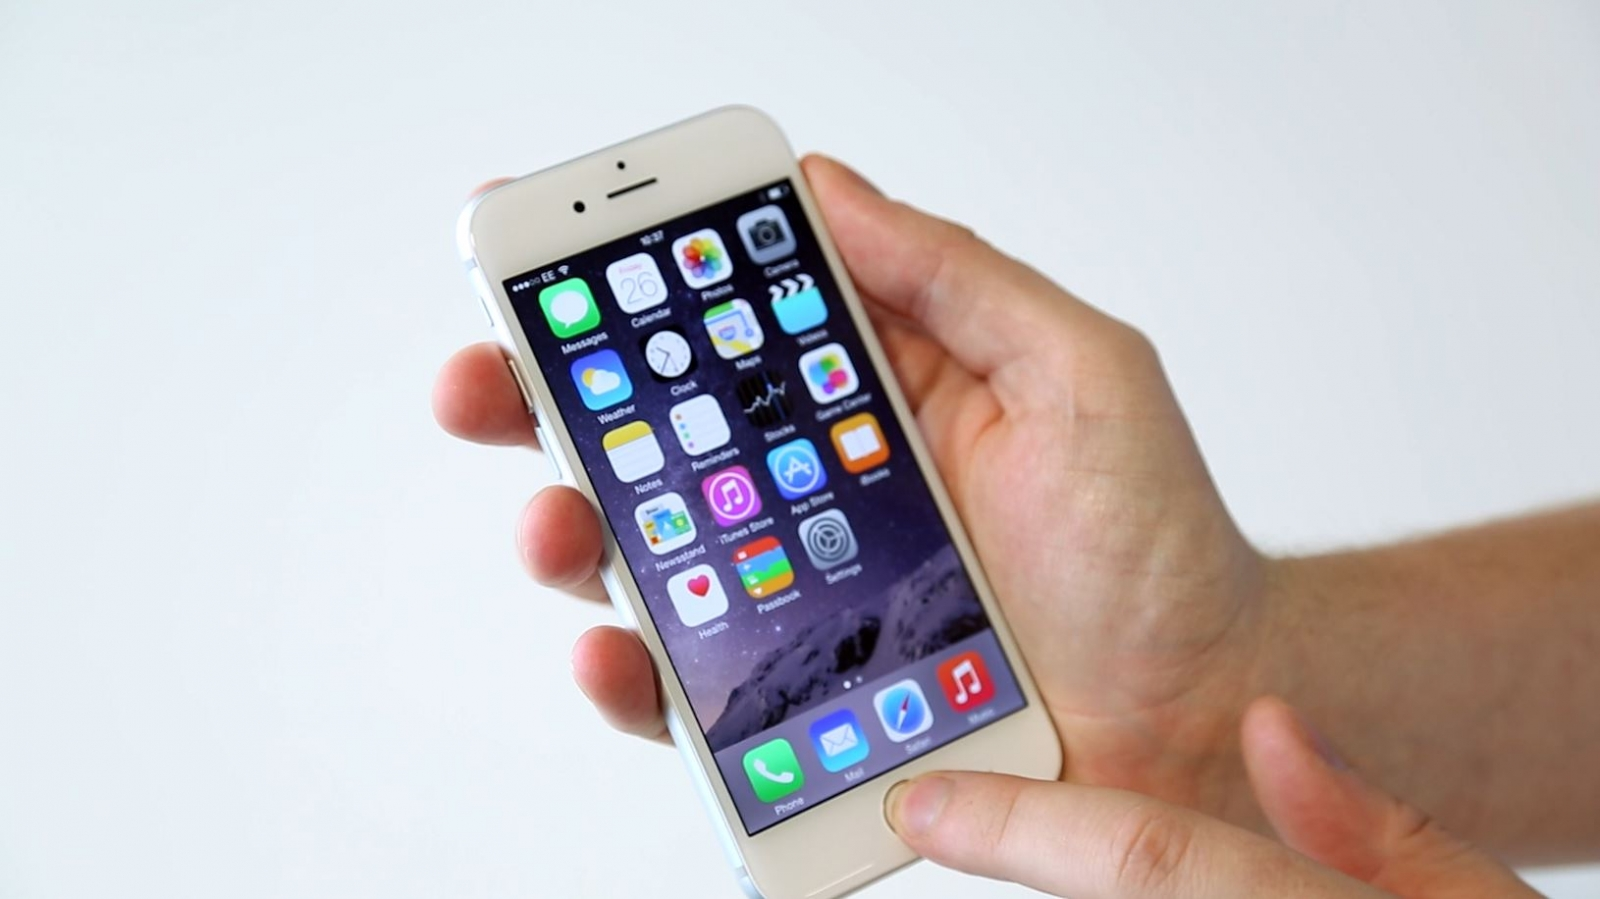 Wirelurker Malware infecting iPhone and iPad